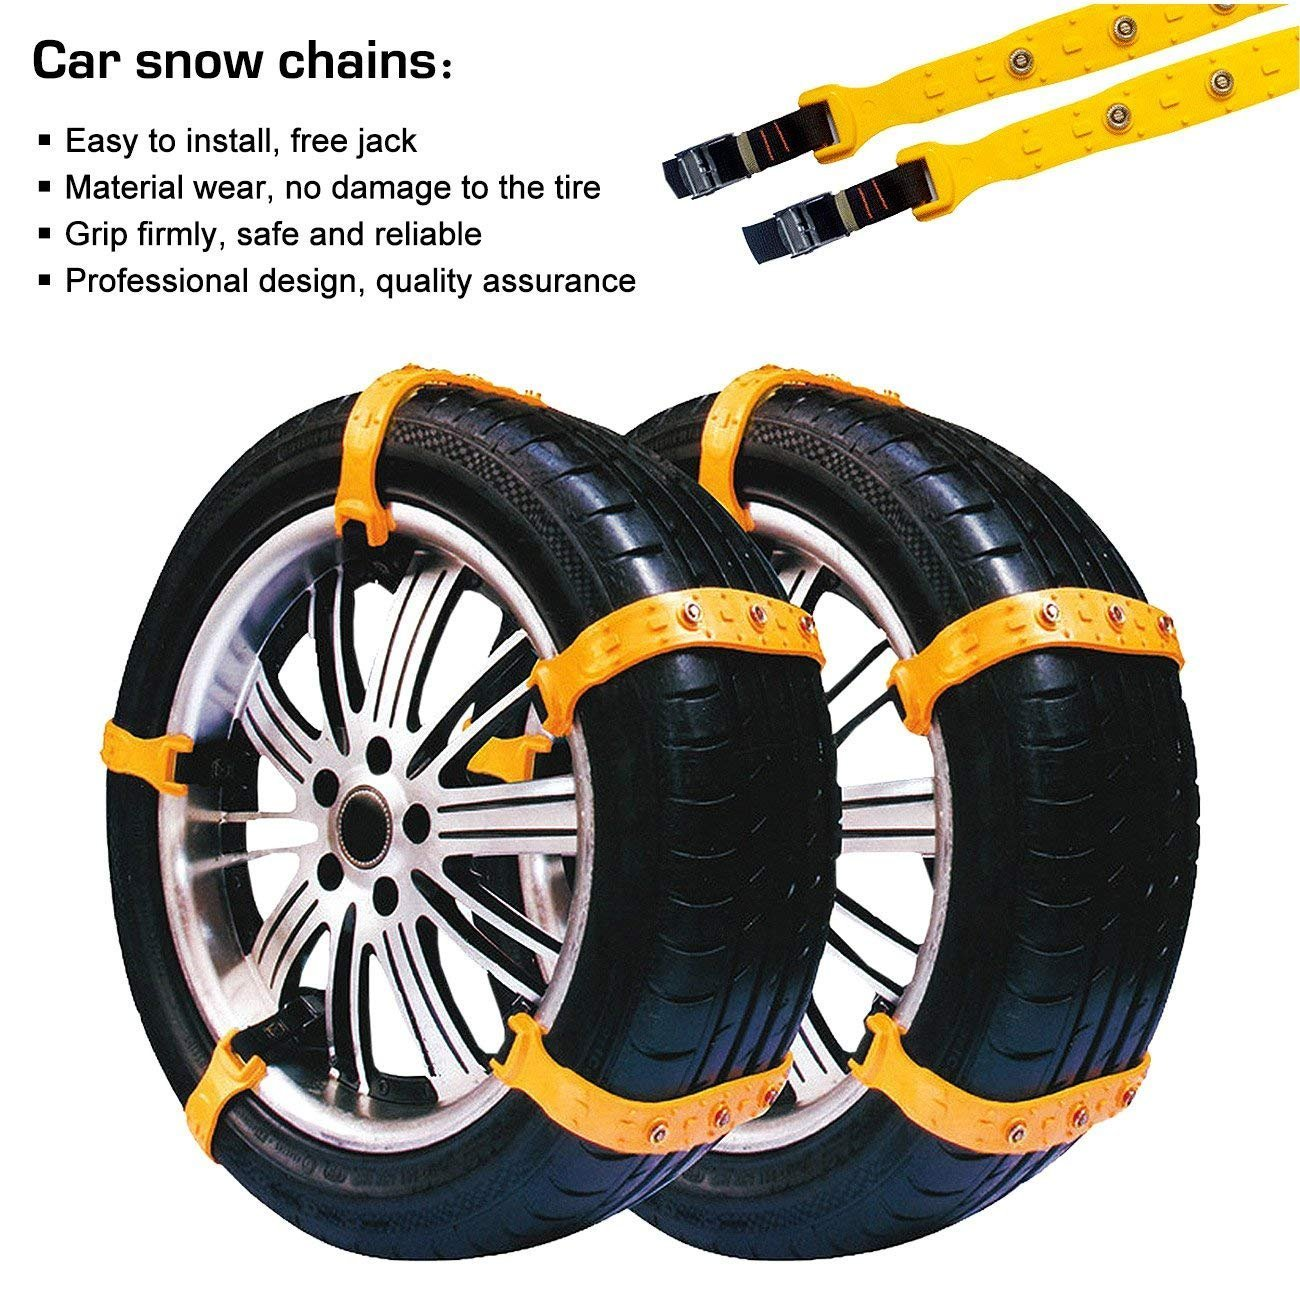 Car Tire Completely Flat, Amazon Com Updated Version Snow Chains Anti Skid Tire Chains Anti Slip Snow Tire Chains For Cars And Suvs Automotive, Car Tire Completely Flat